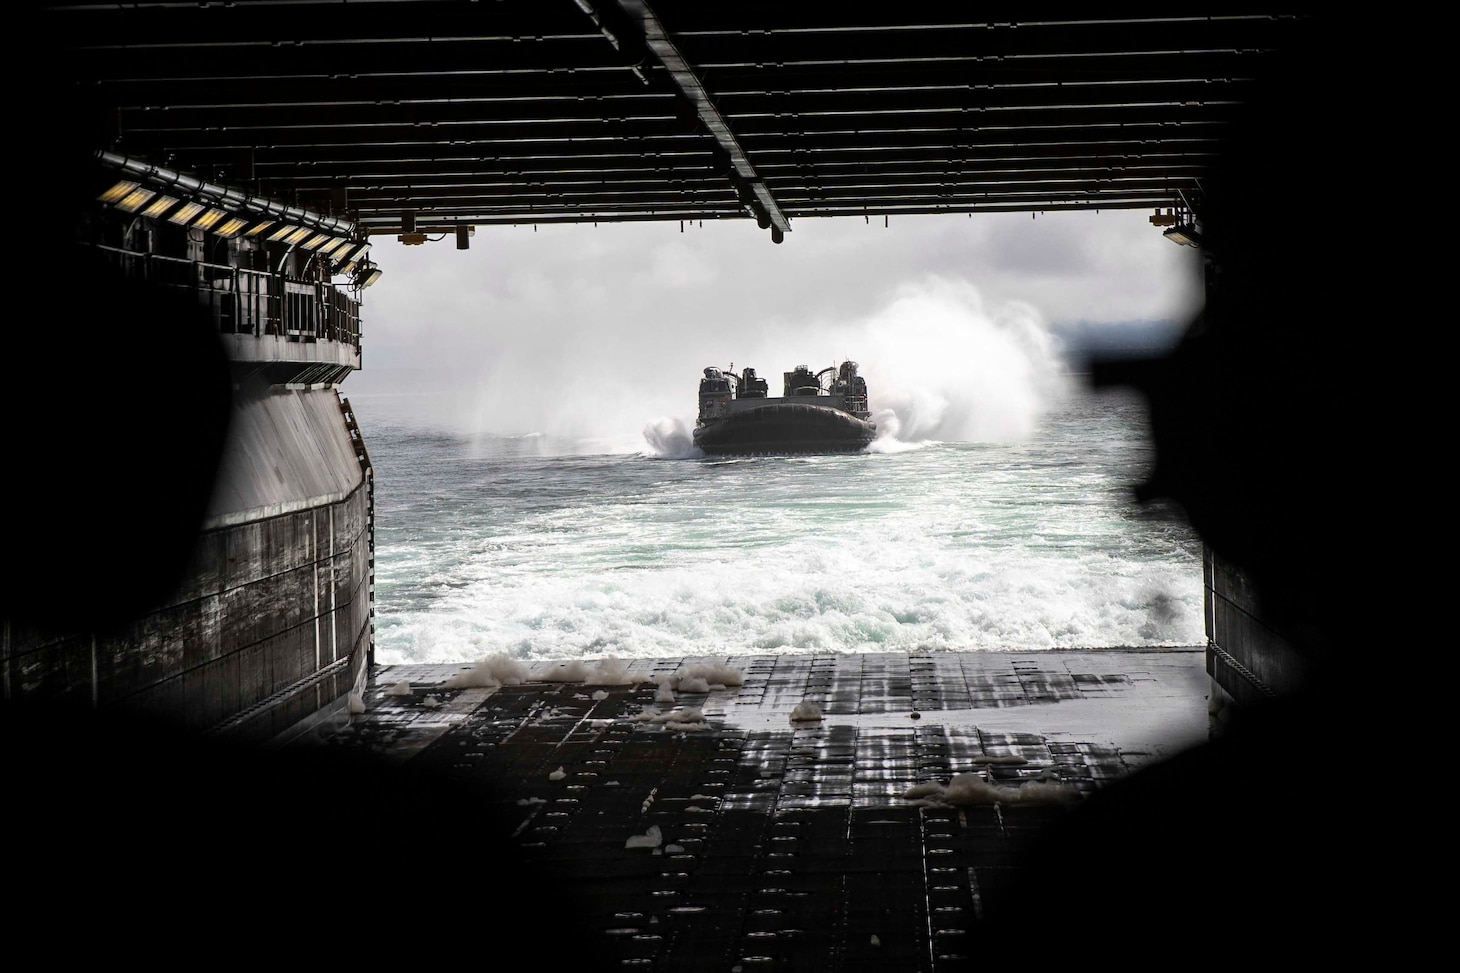 A landing craft takes to the water.